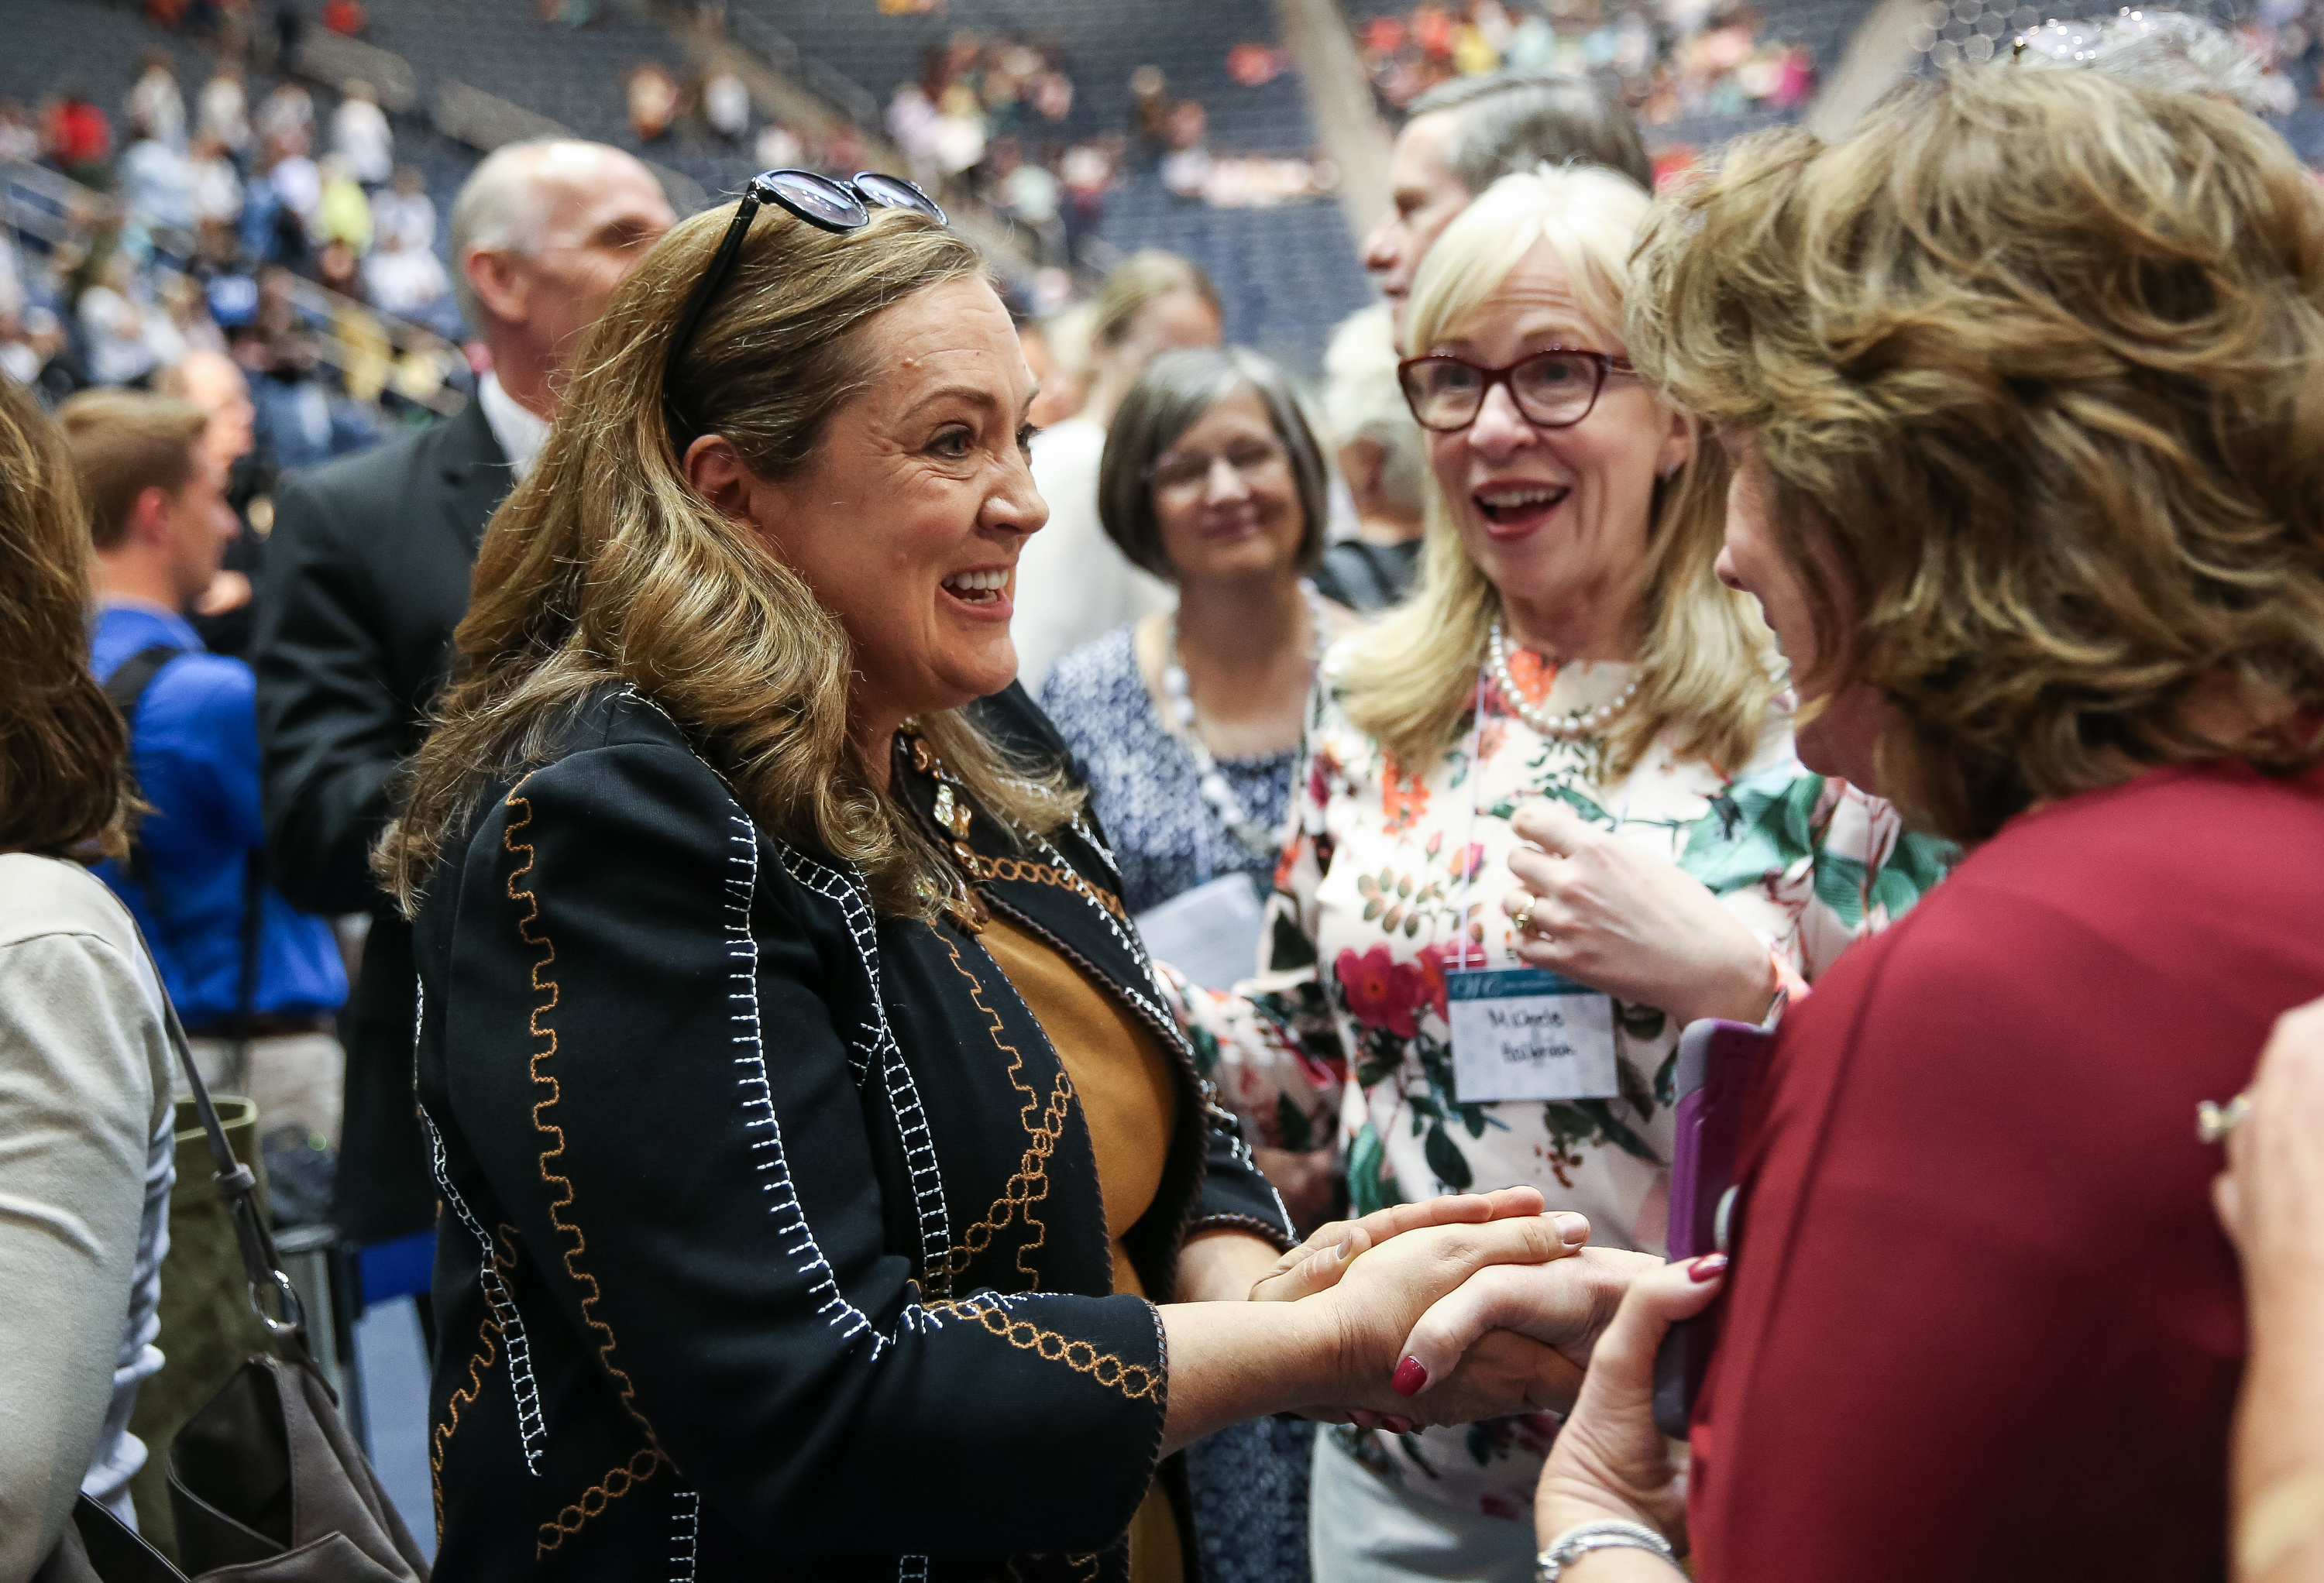 Sister Susan Gong, wife of Elder Gerrit W. Gong, of the Quorum of the Twelve Apostles of the LDS Church, greets attendees after she and her husband spoke at the BYU Women's Conference at the Marriott Center in Provo on Friday, May 4, 2018.